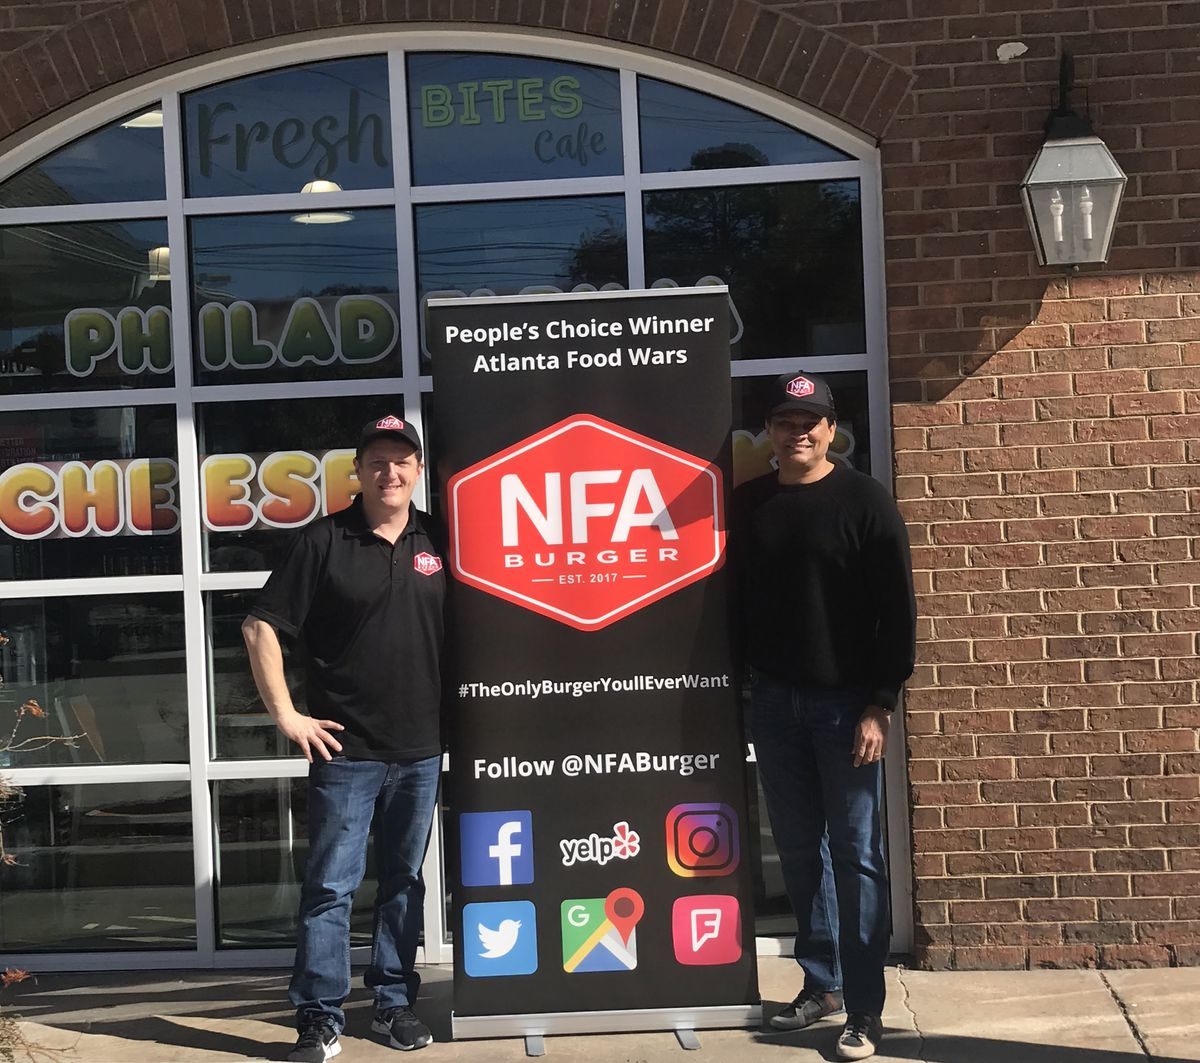 NFA Burger owner Billy Kramer and Chevron owner Salim Thobani standing next to the NFA Burger poster board at the gas station